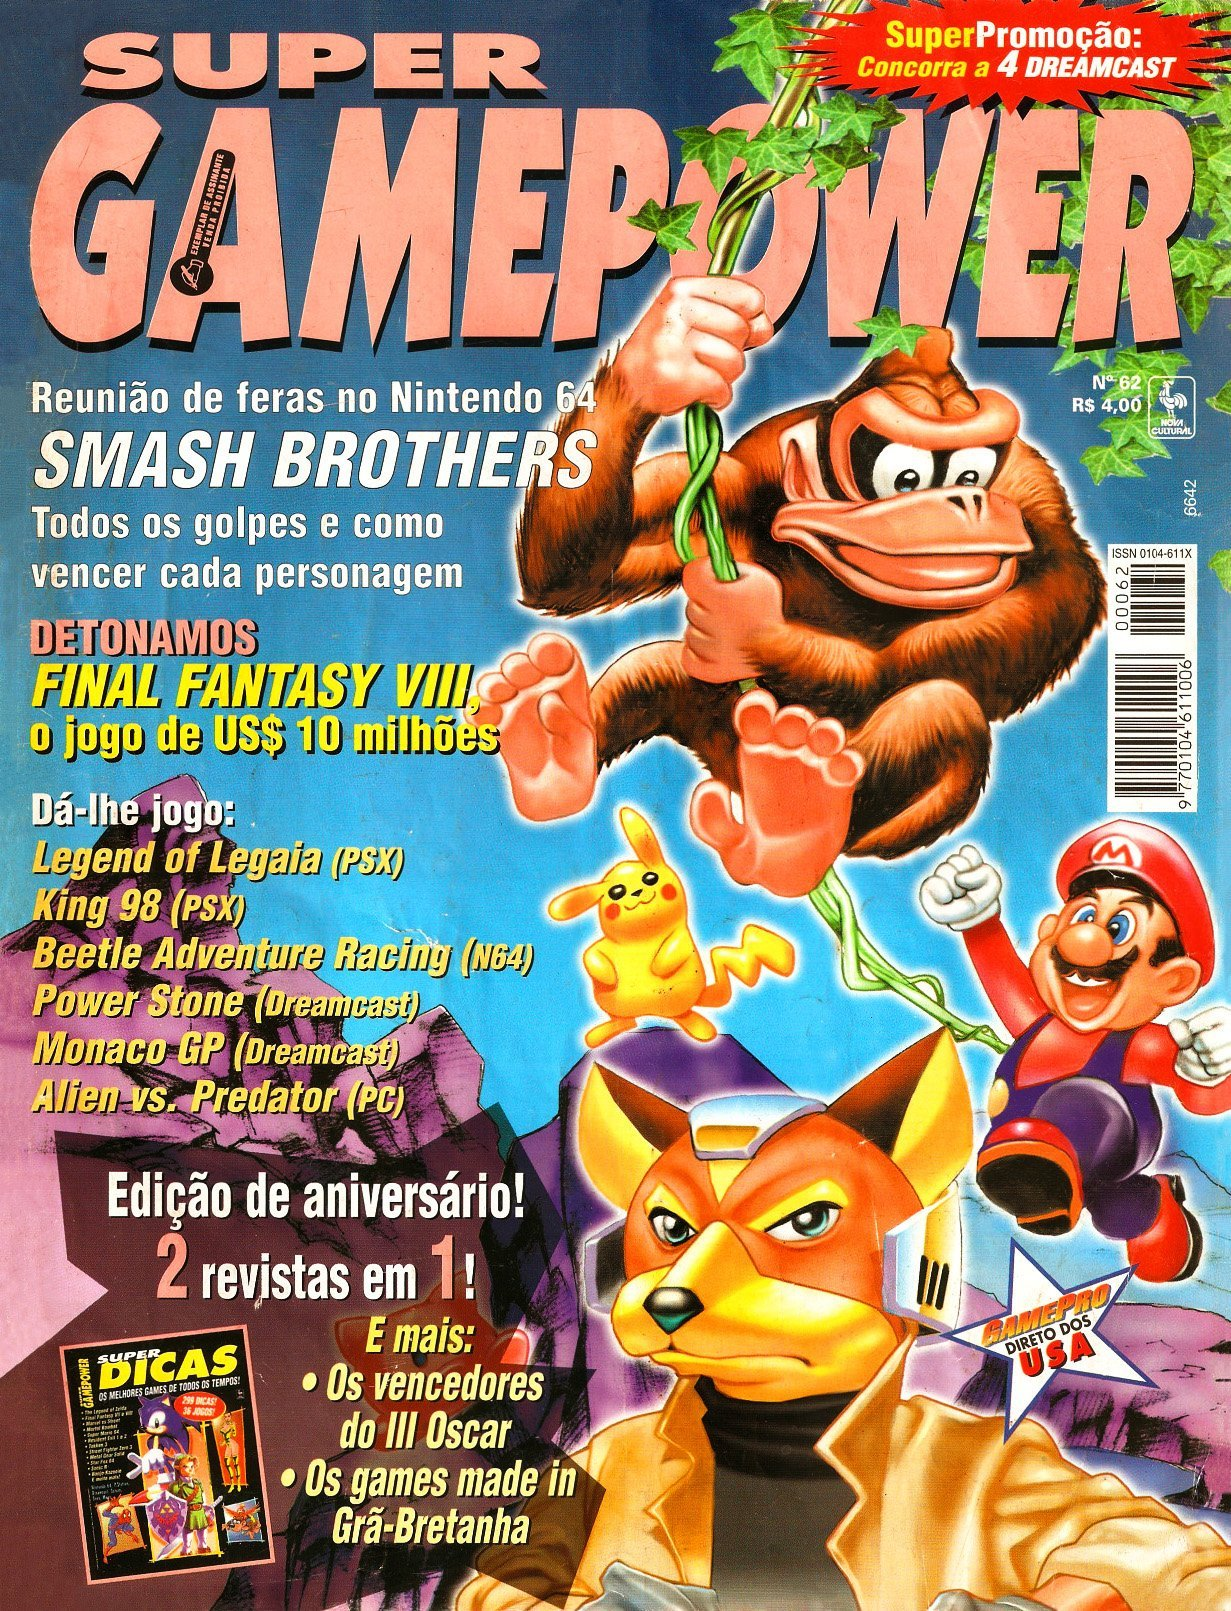 SuperGamePower Issue 062 (May 1999)